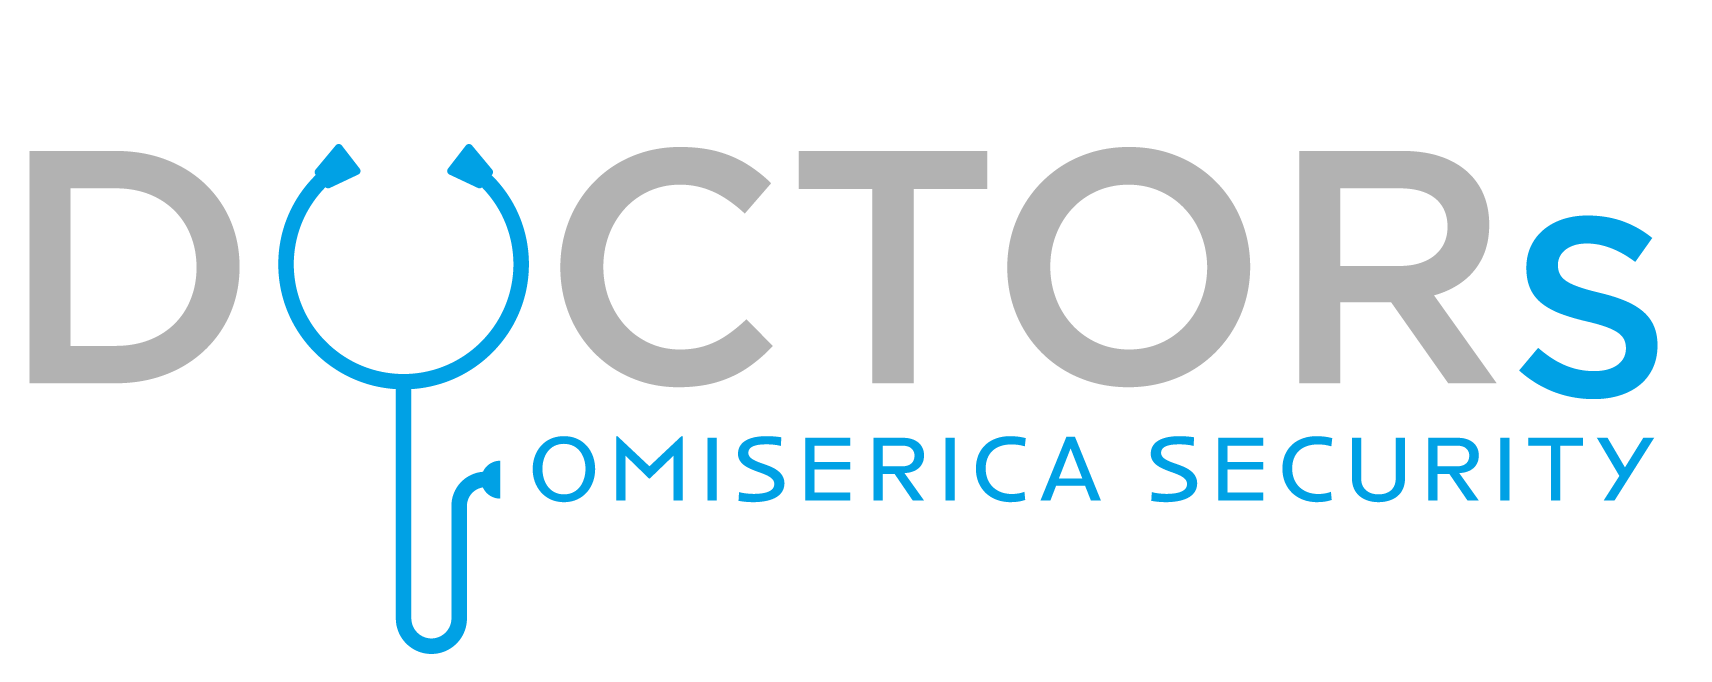 Omiserica-Technology-Security